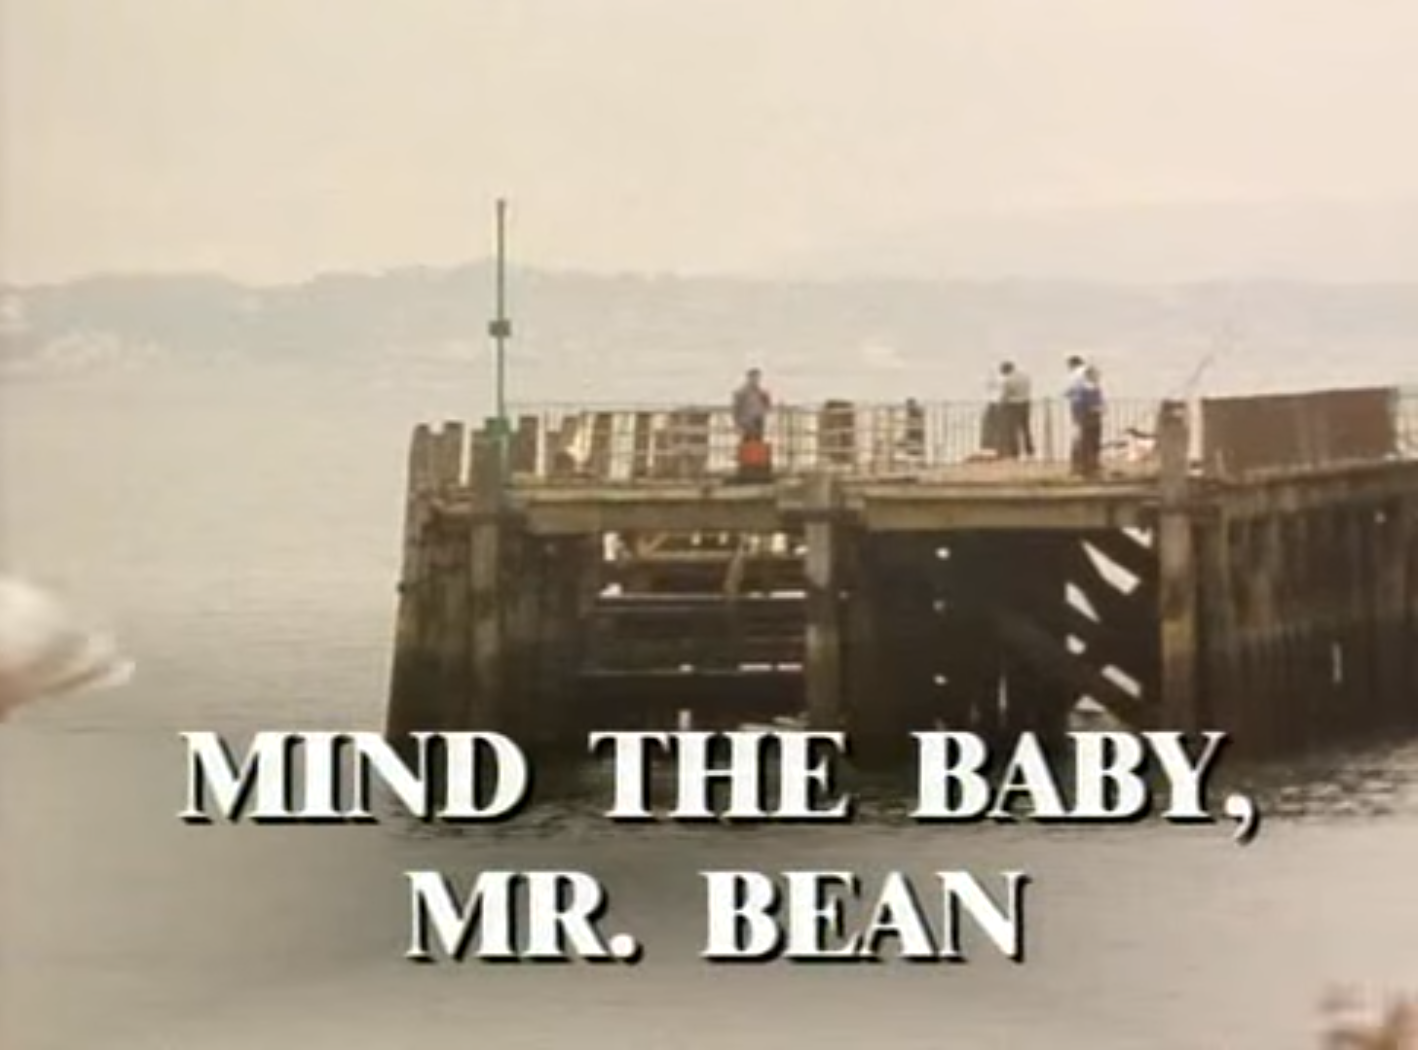 Mind the baby mr bean mr bean wiki fandom powered by wikia mind the baby mr bean solutioingenieria Choice Image